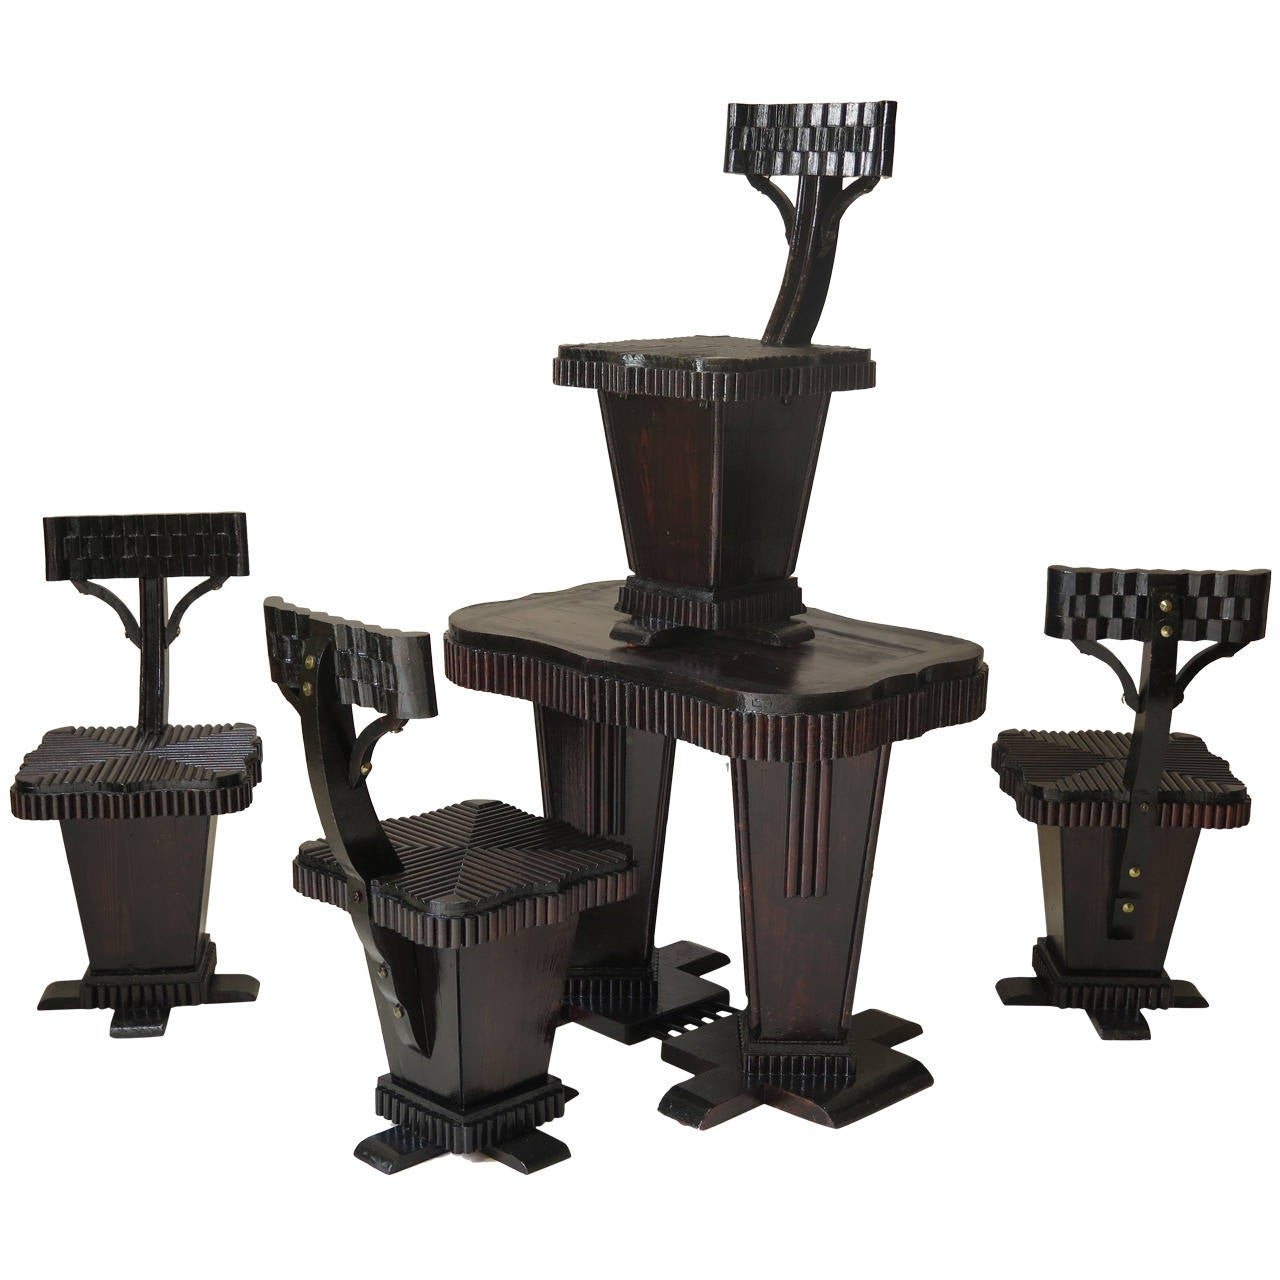 Geometric-Patterned Art Deco Table and Chair Set, France, 1930s